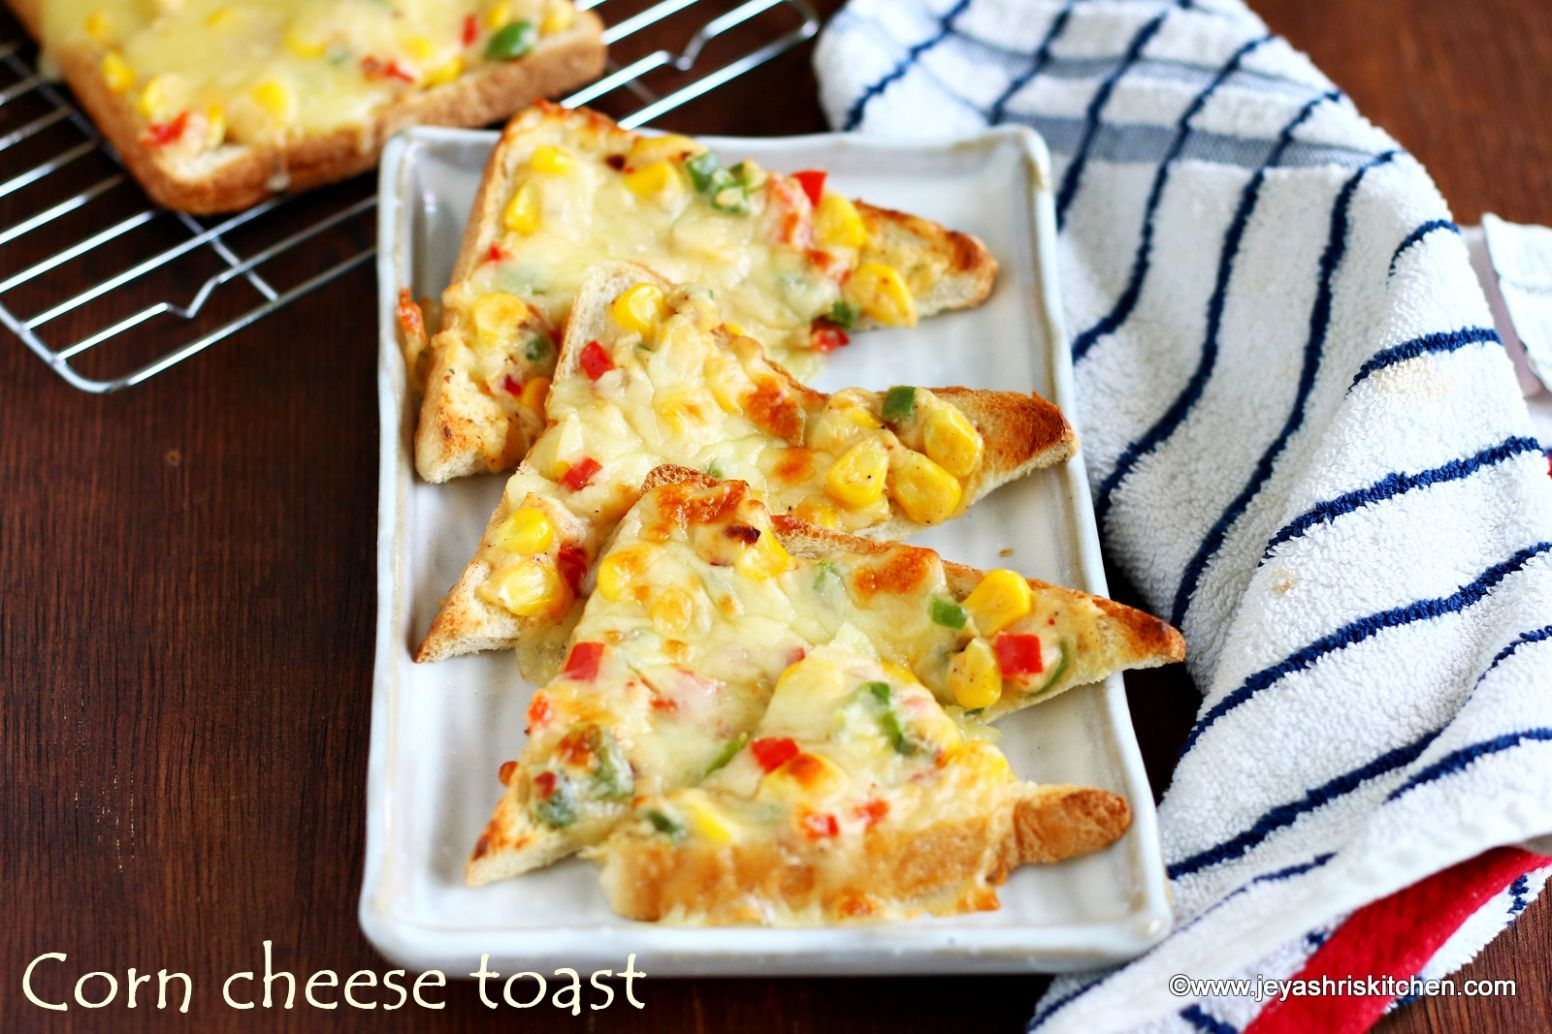 Corn cheese capsicum toast recipe